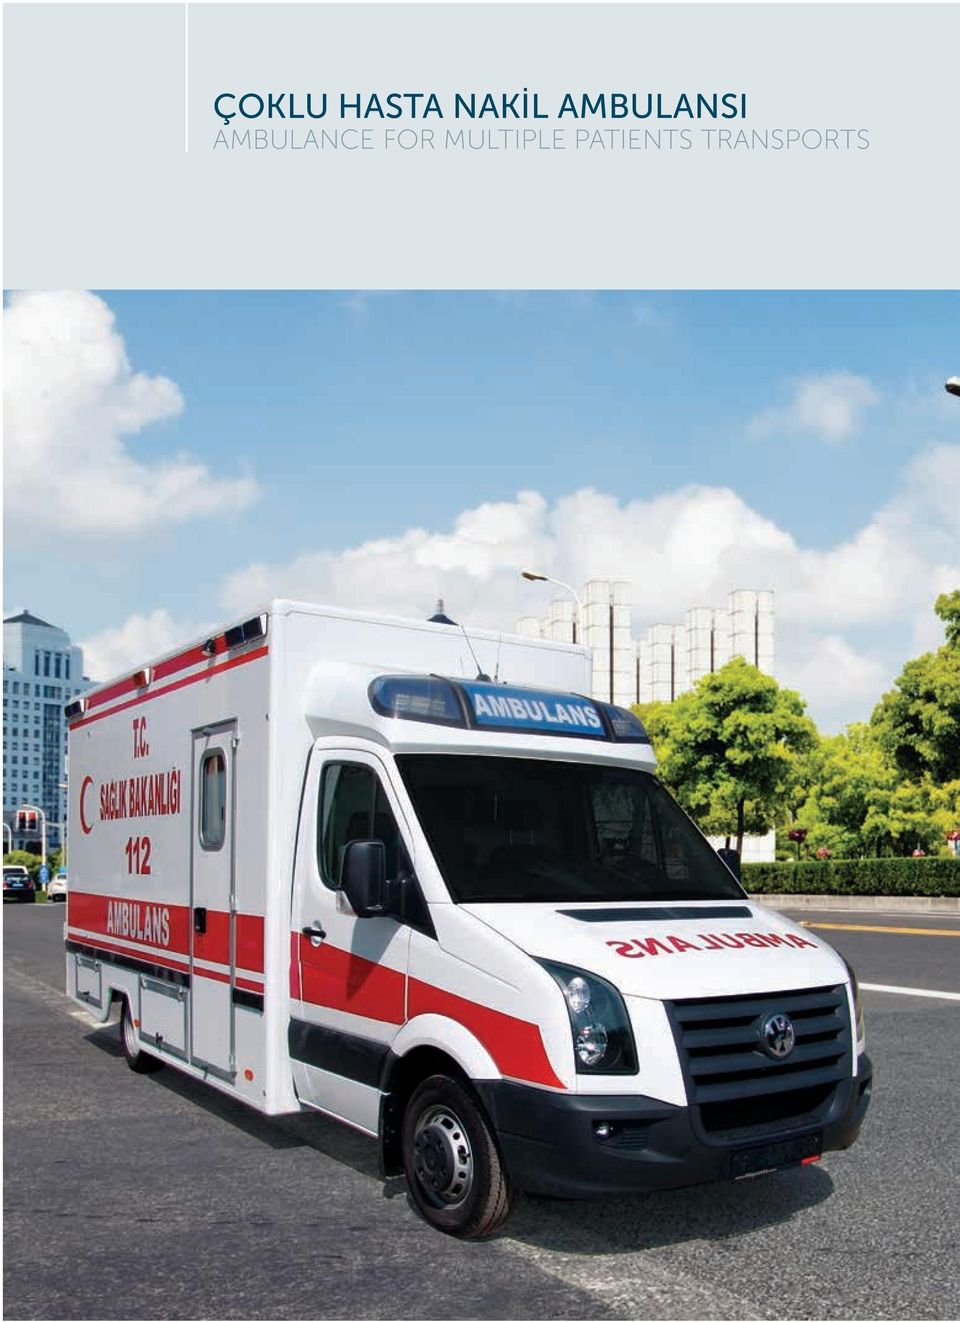 AMBULANCE FOR